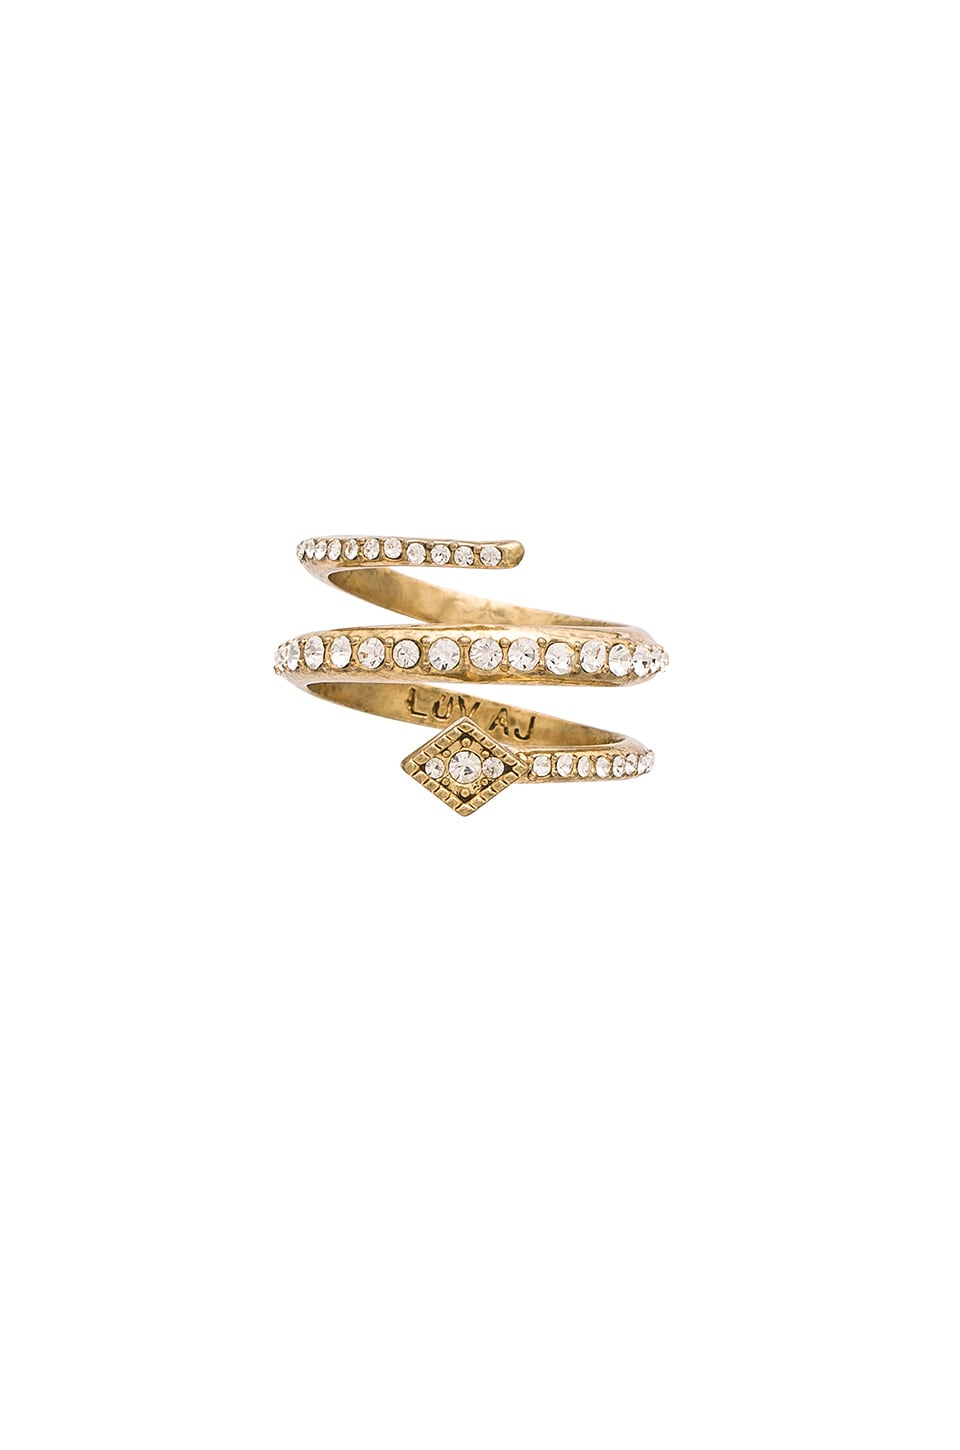 Luv AJ The Diamond Kite Coil Ring in Antique Gold